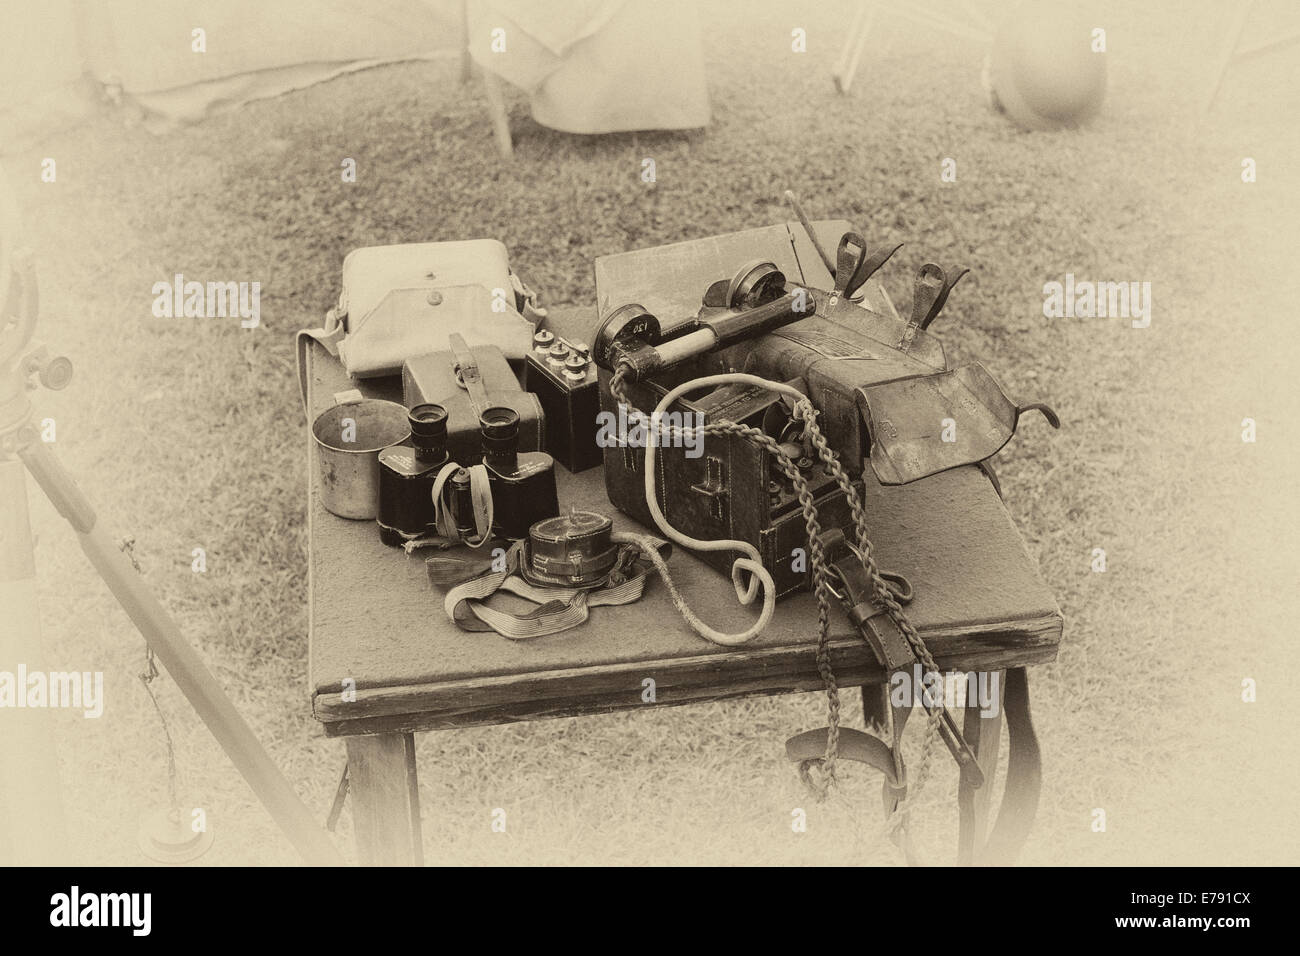 Home guard communications equipment - Stock Image